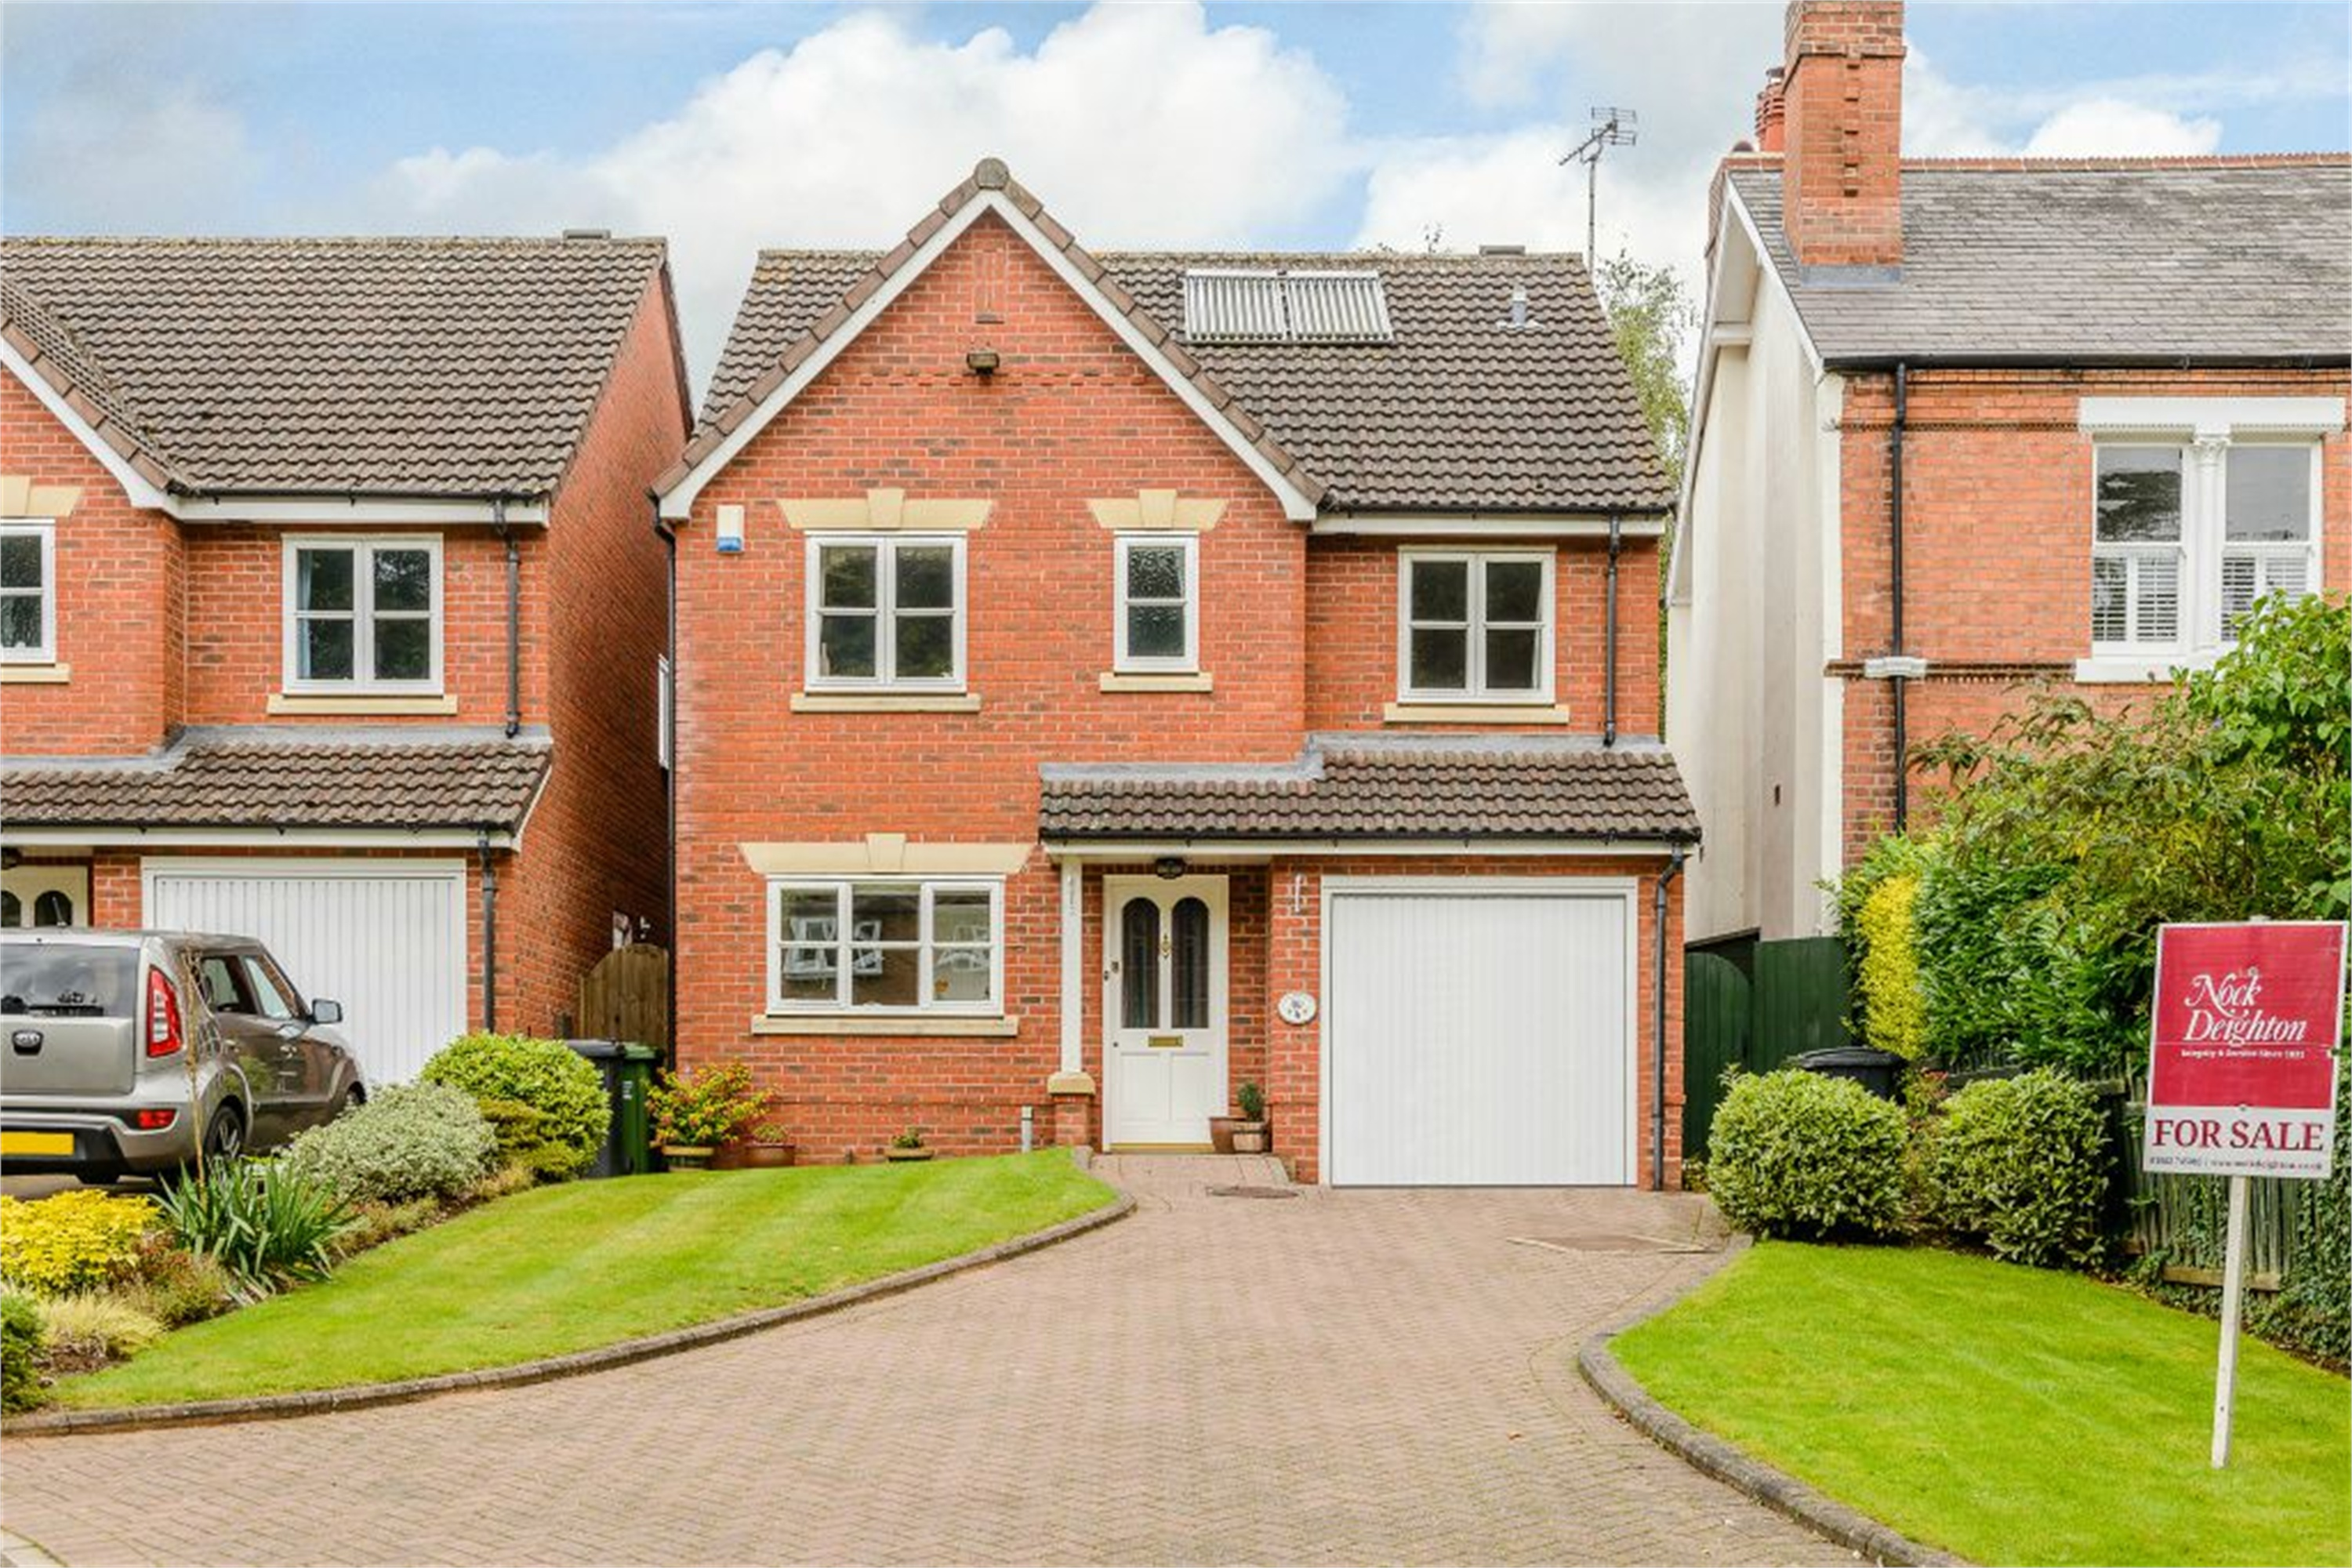 4 Bedrooms Detached House for sale in 6 Comberton Gardens, Kidderminster, Worcestershire, DY10